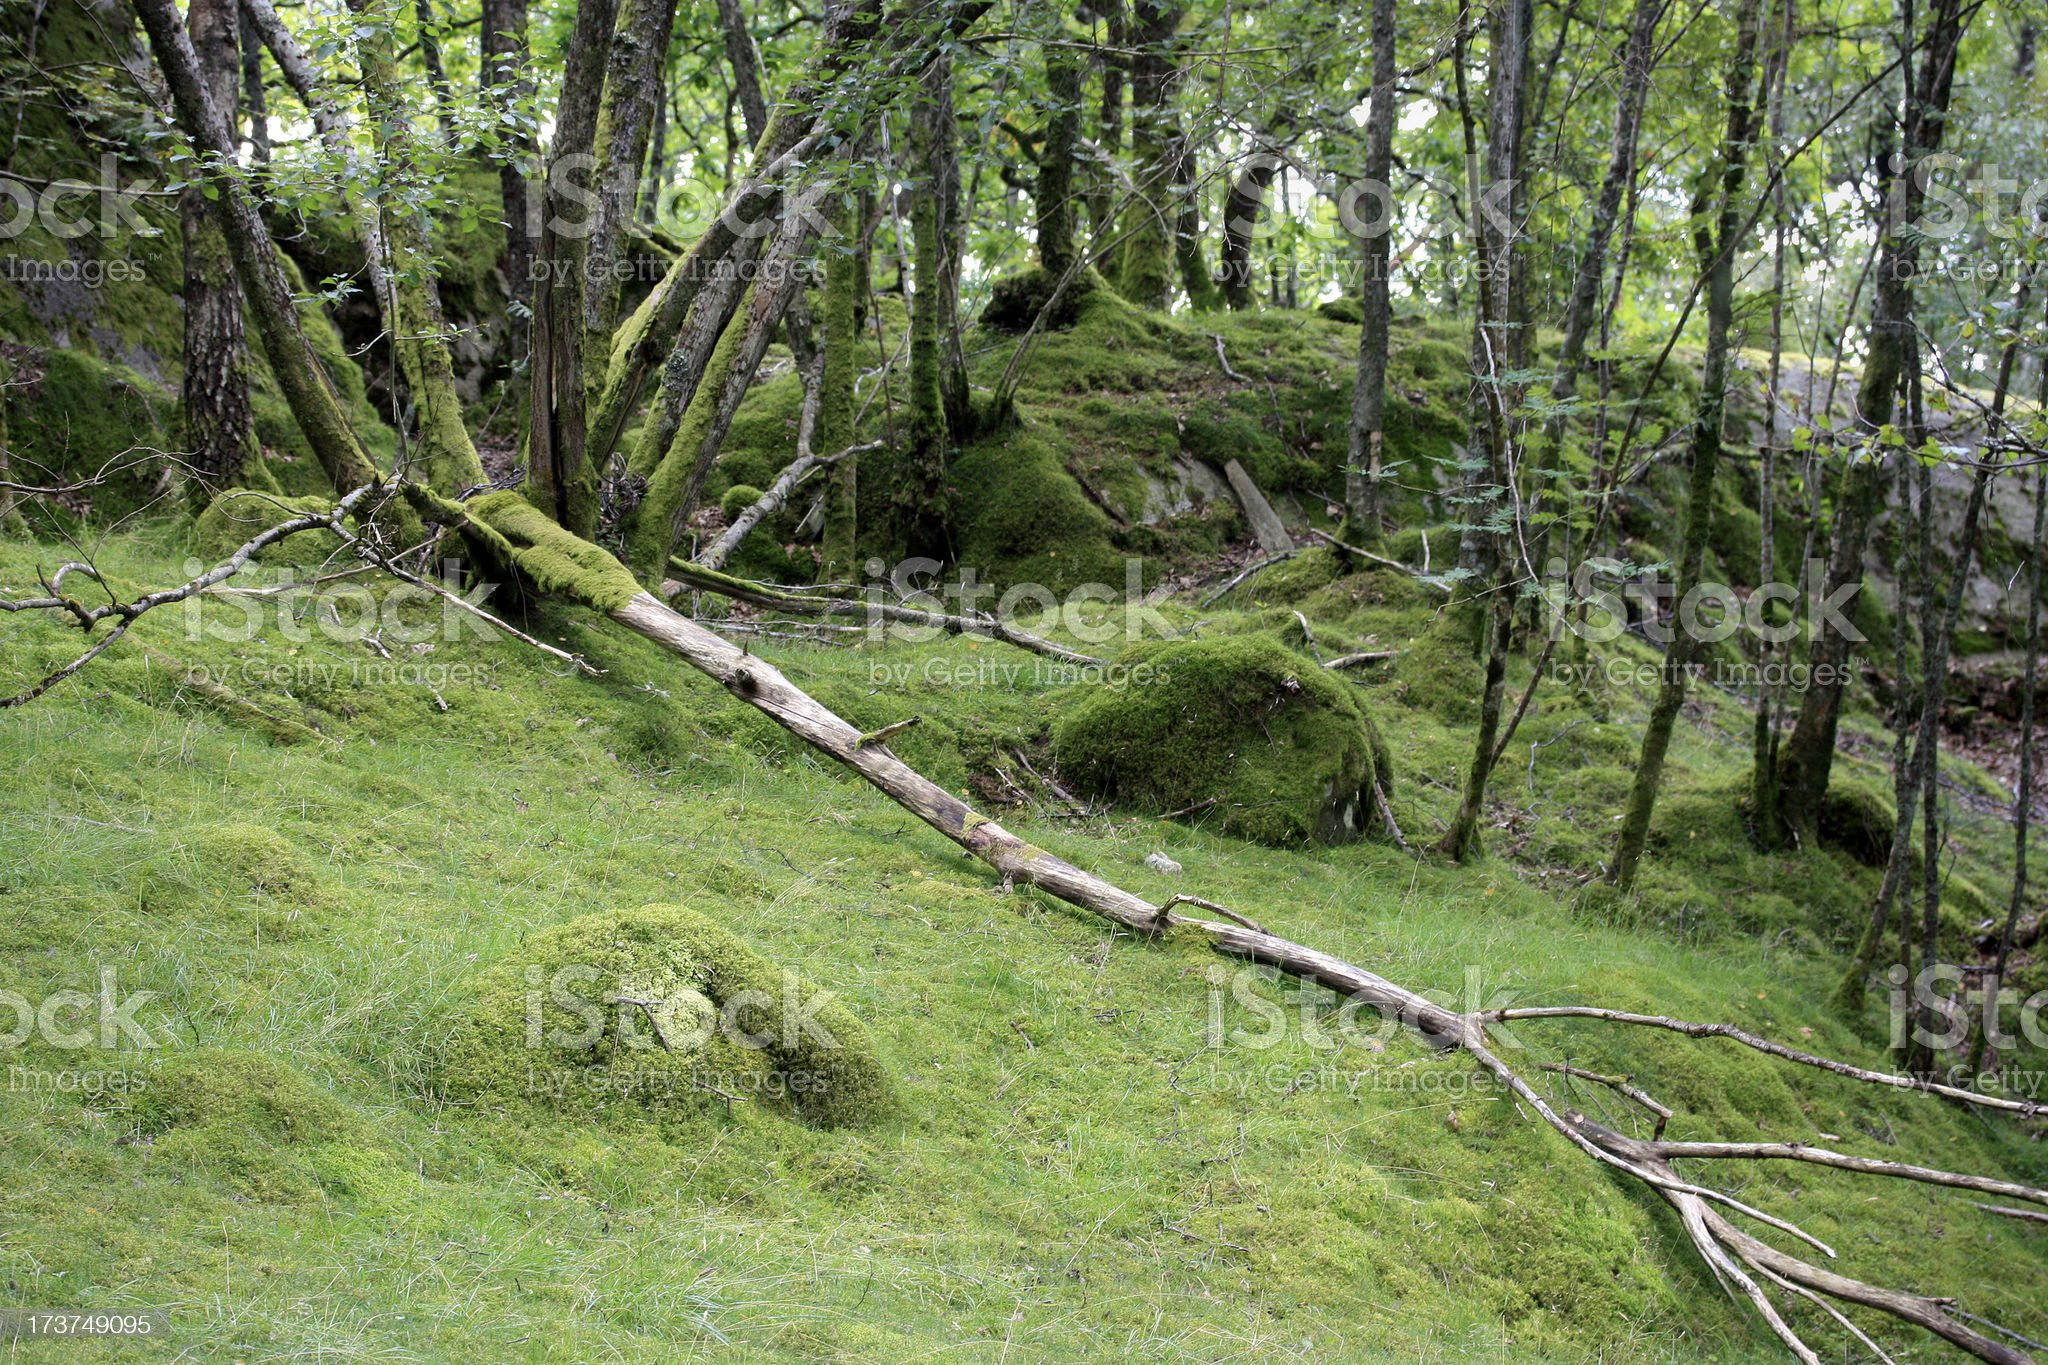 Mossy forest clearing tranquil nature background royalty-free stock photo